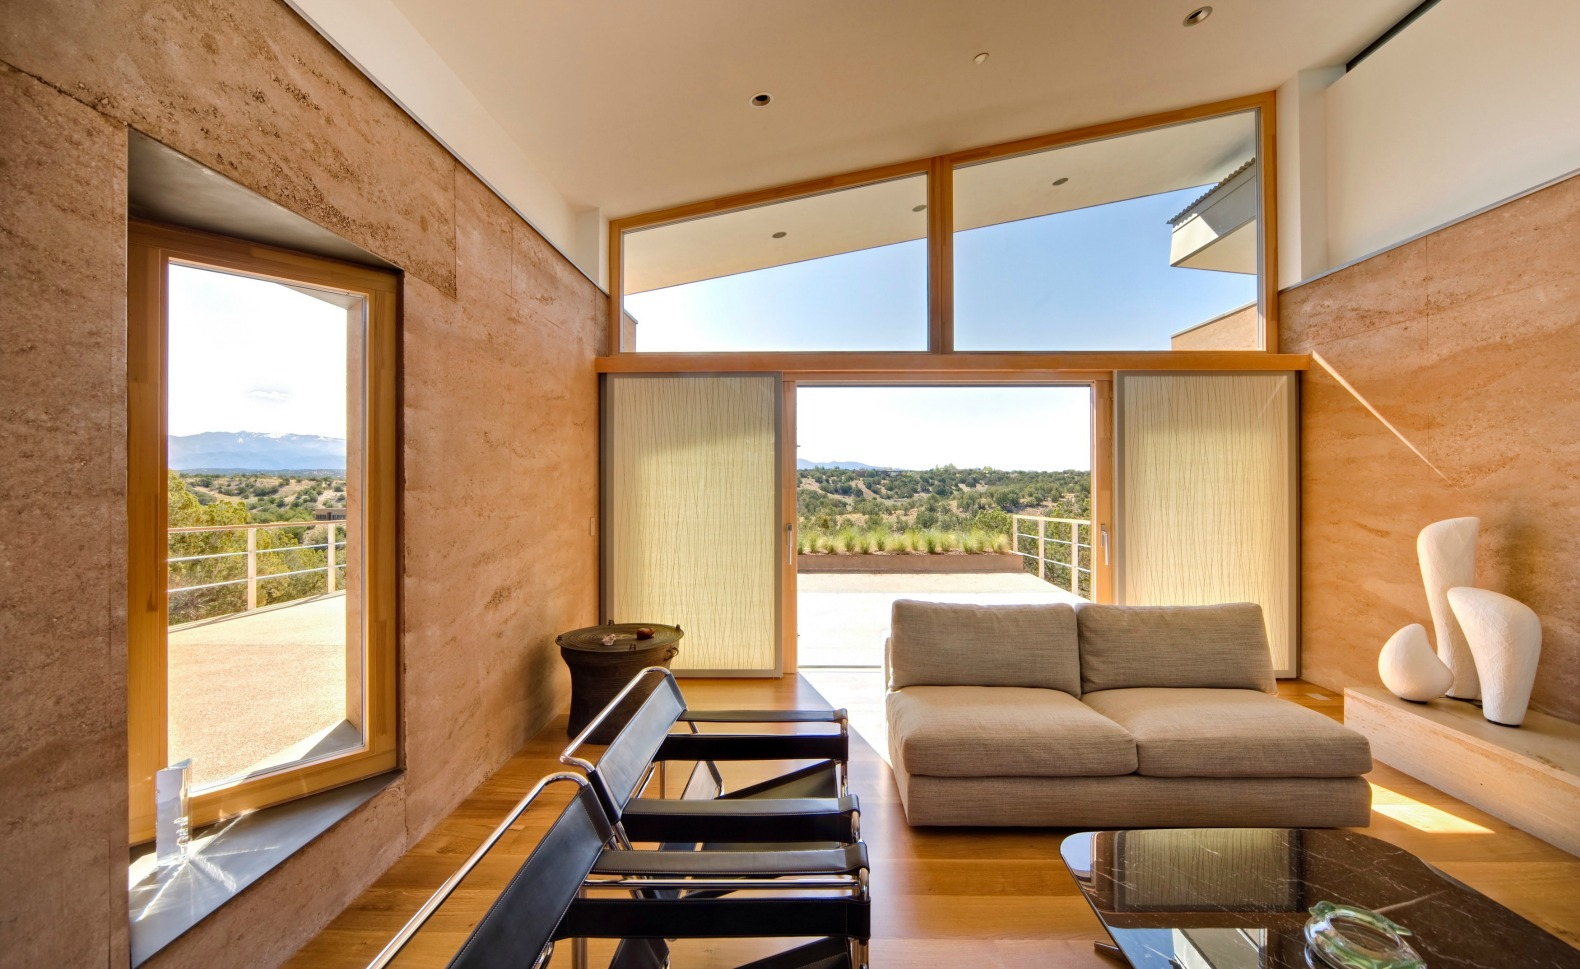 Striking rammed earth home blends into the hills of Santa Fe  Inhabitat  Green Design